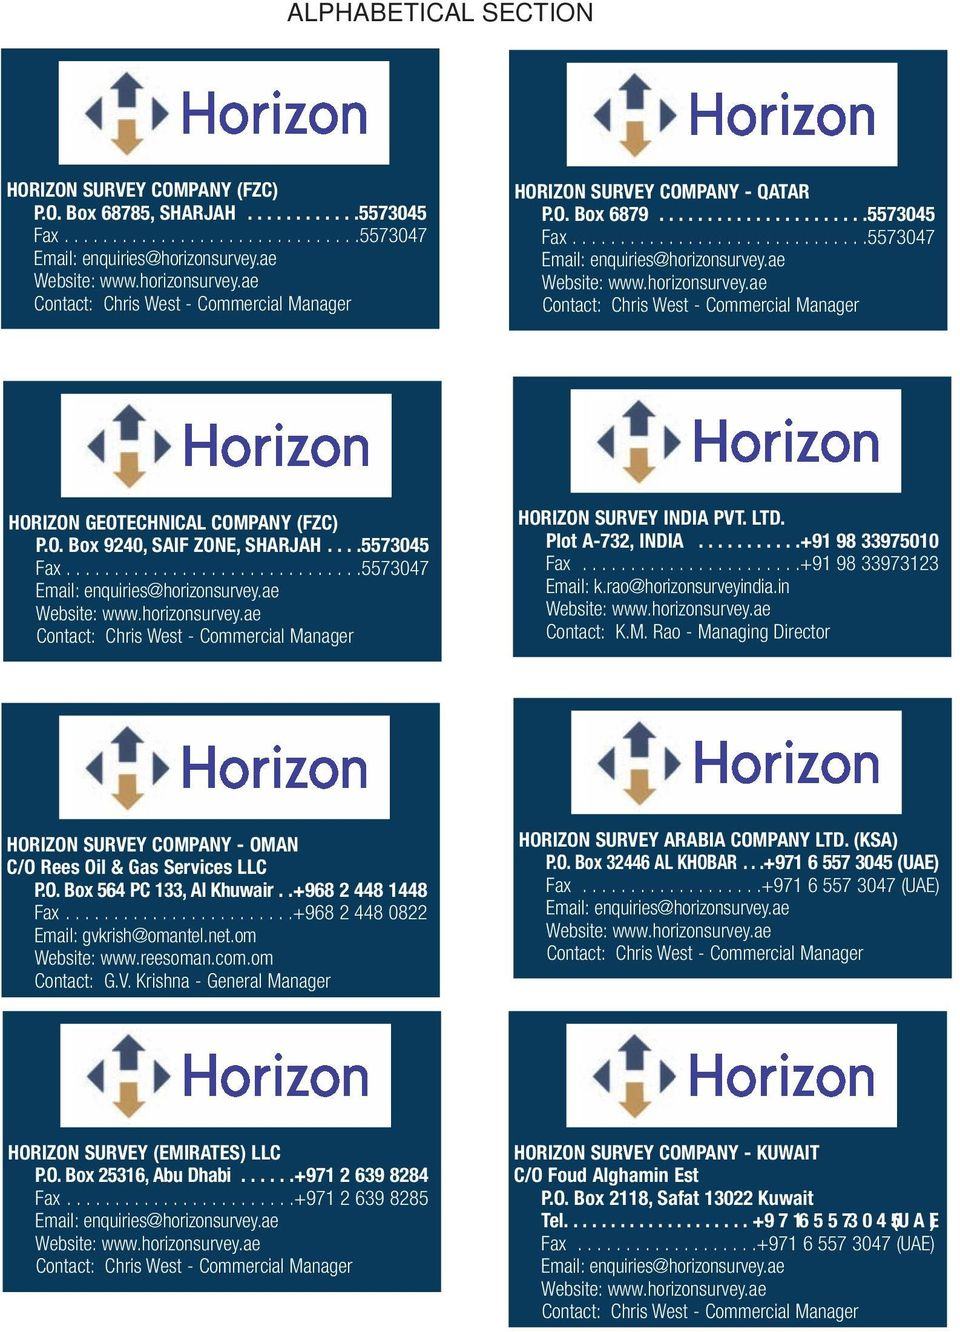 Horizon Survey and Geotechnical Companies - PDF